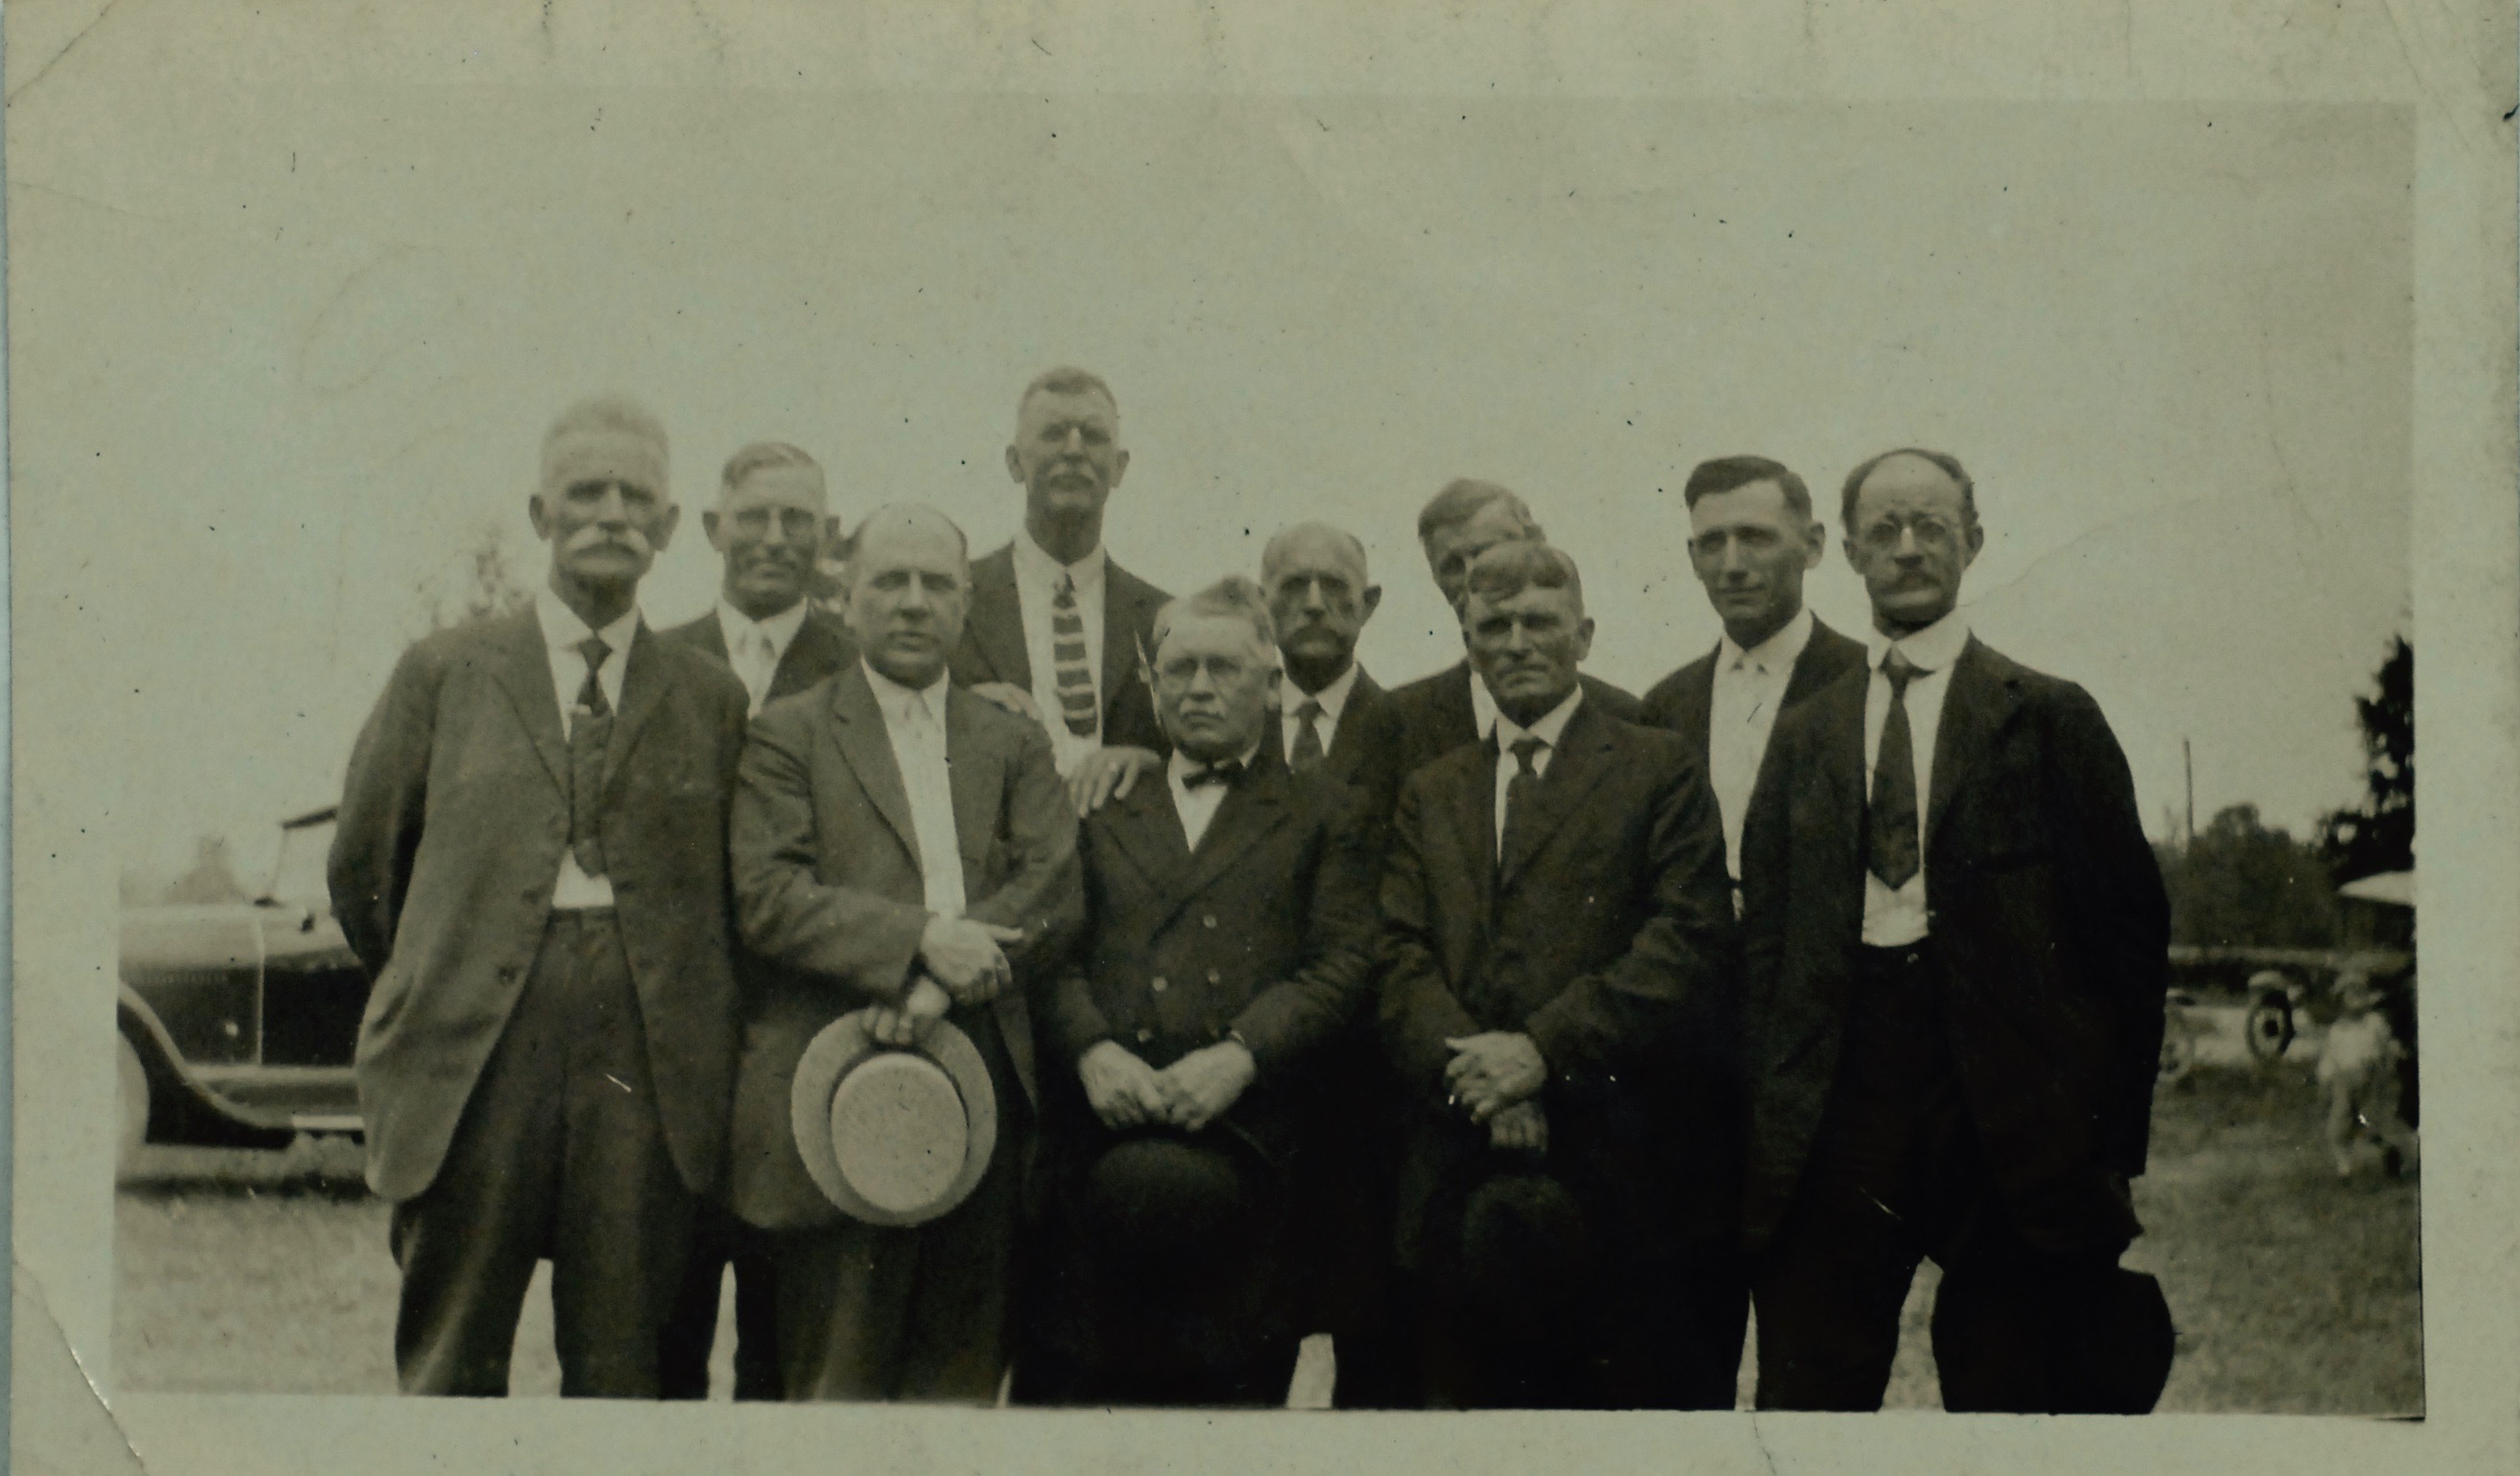 Elders at Unknown Meeting Circa 1910's